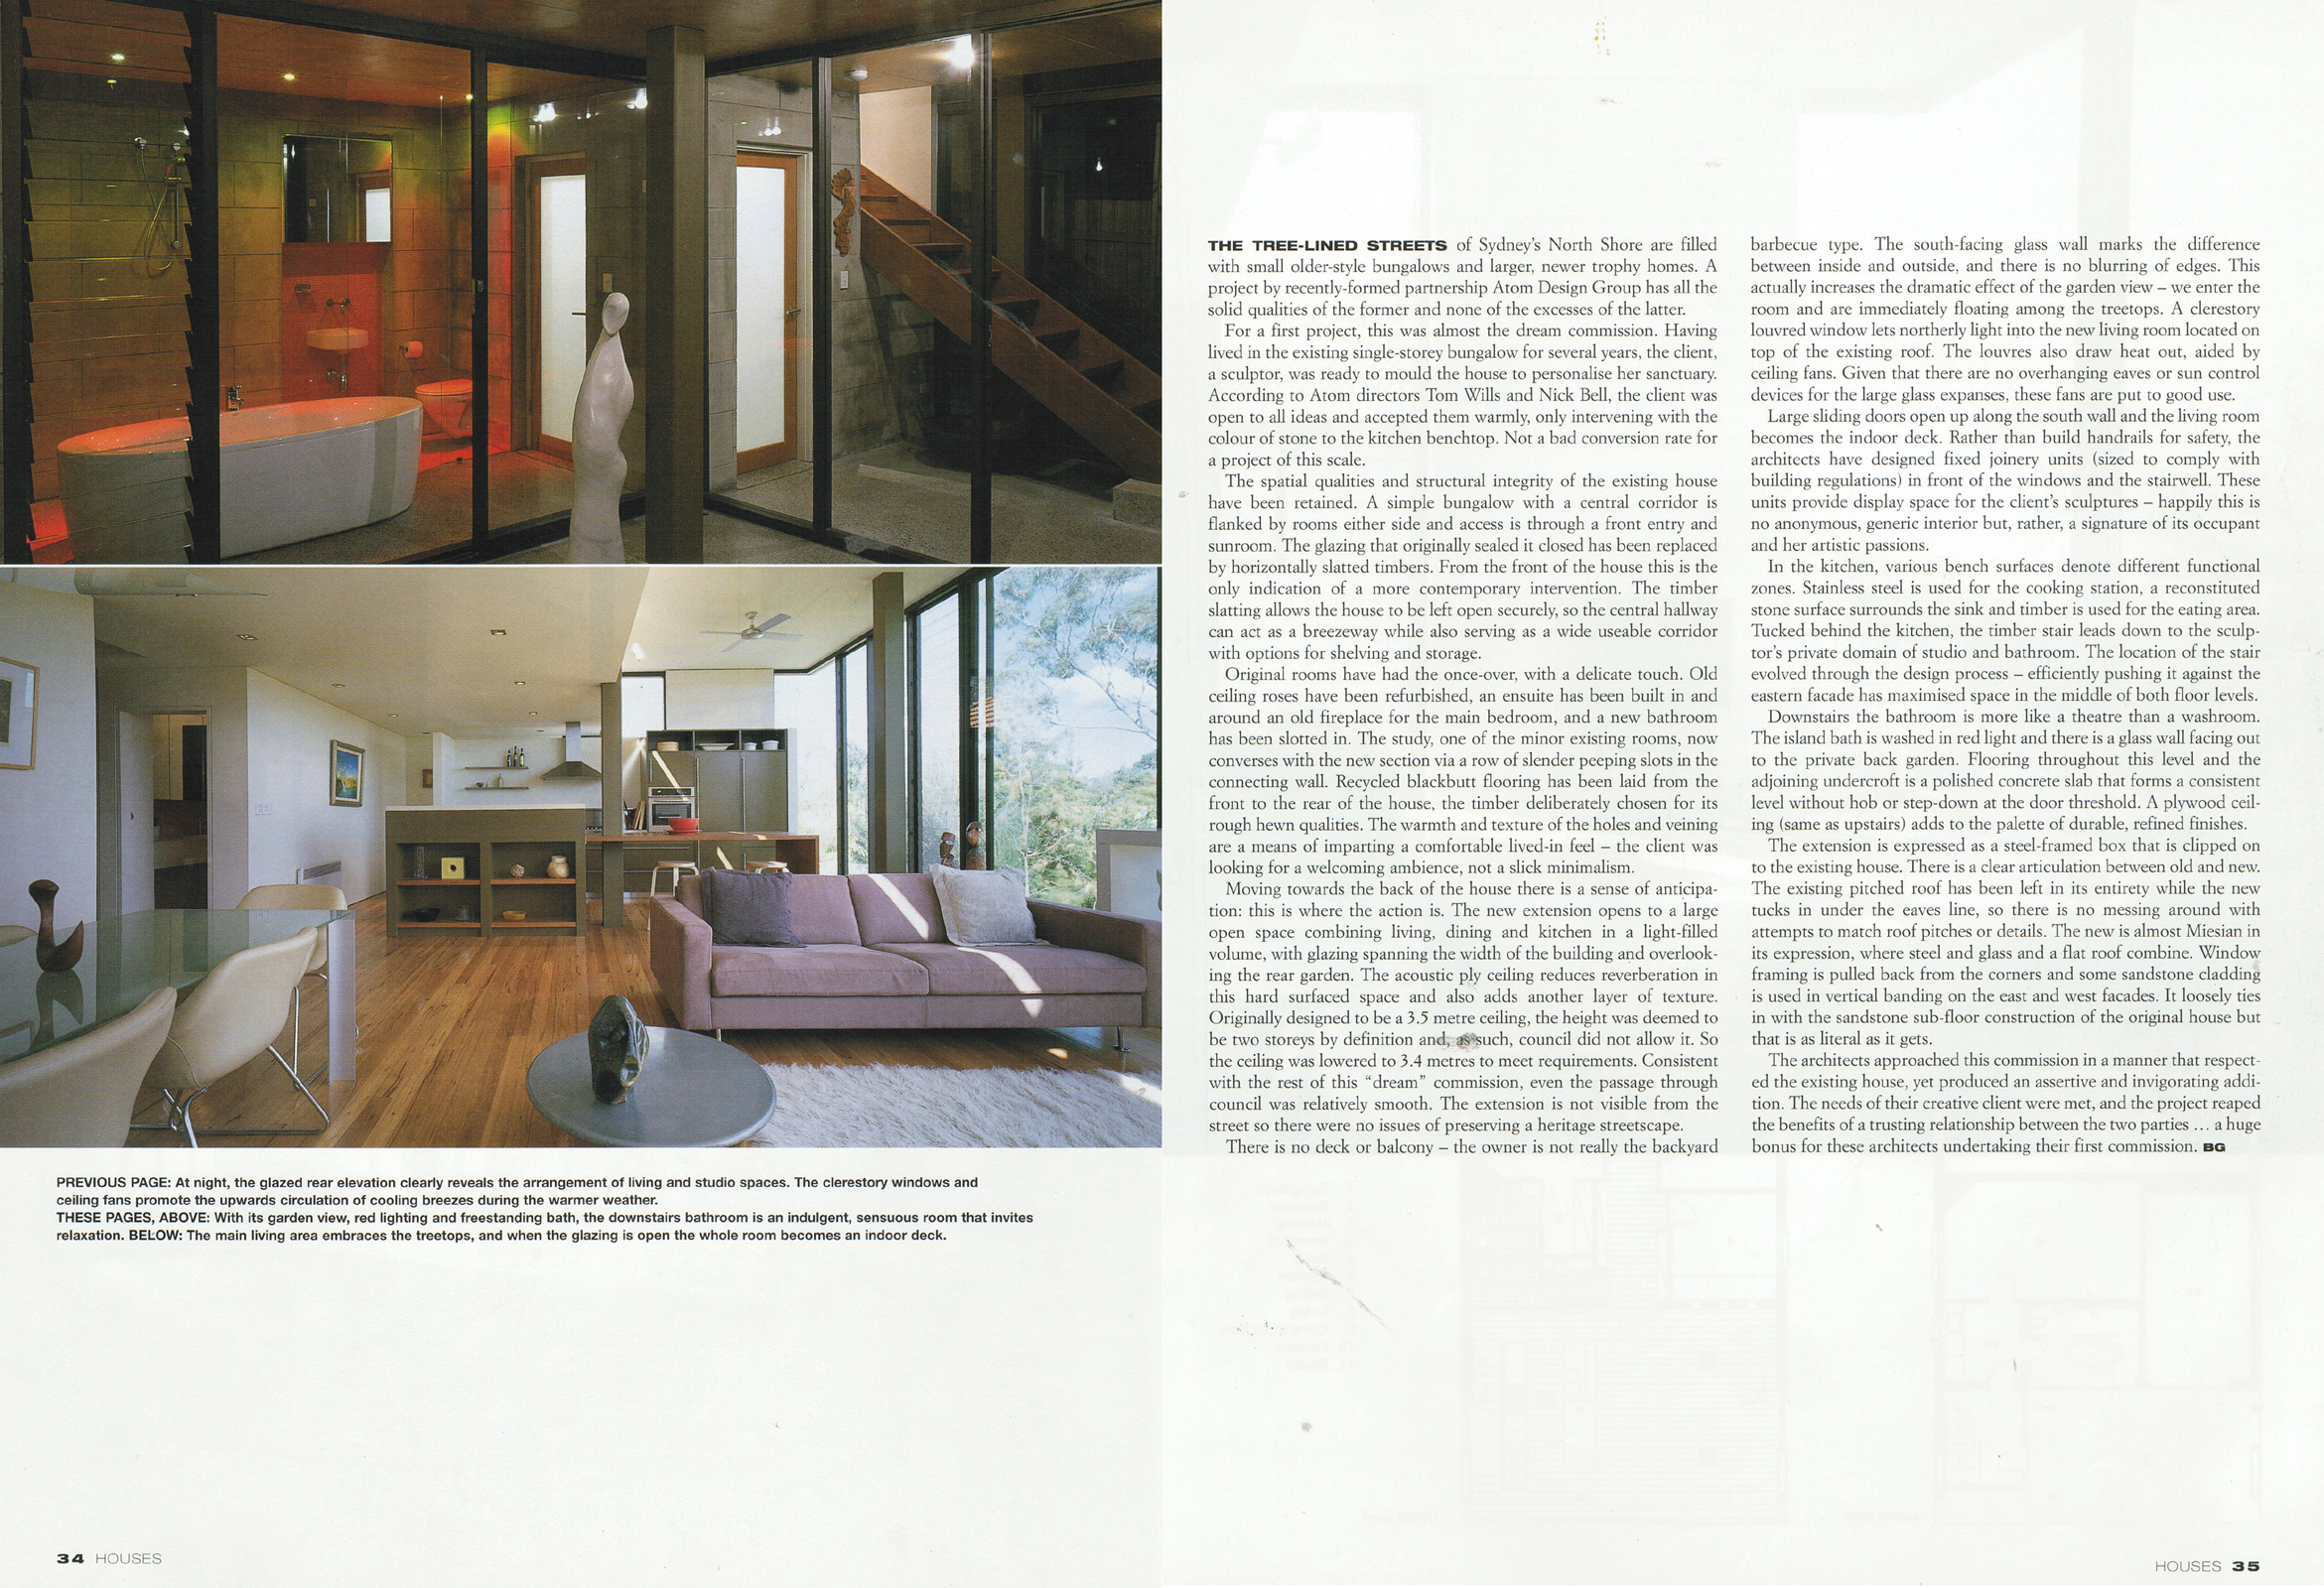 houses pages 34 & 35.jpg